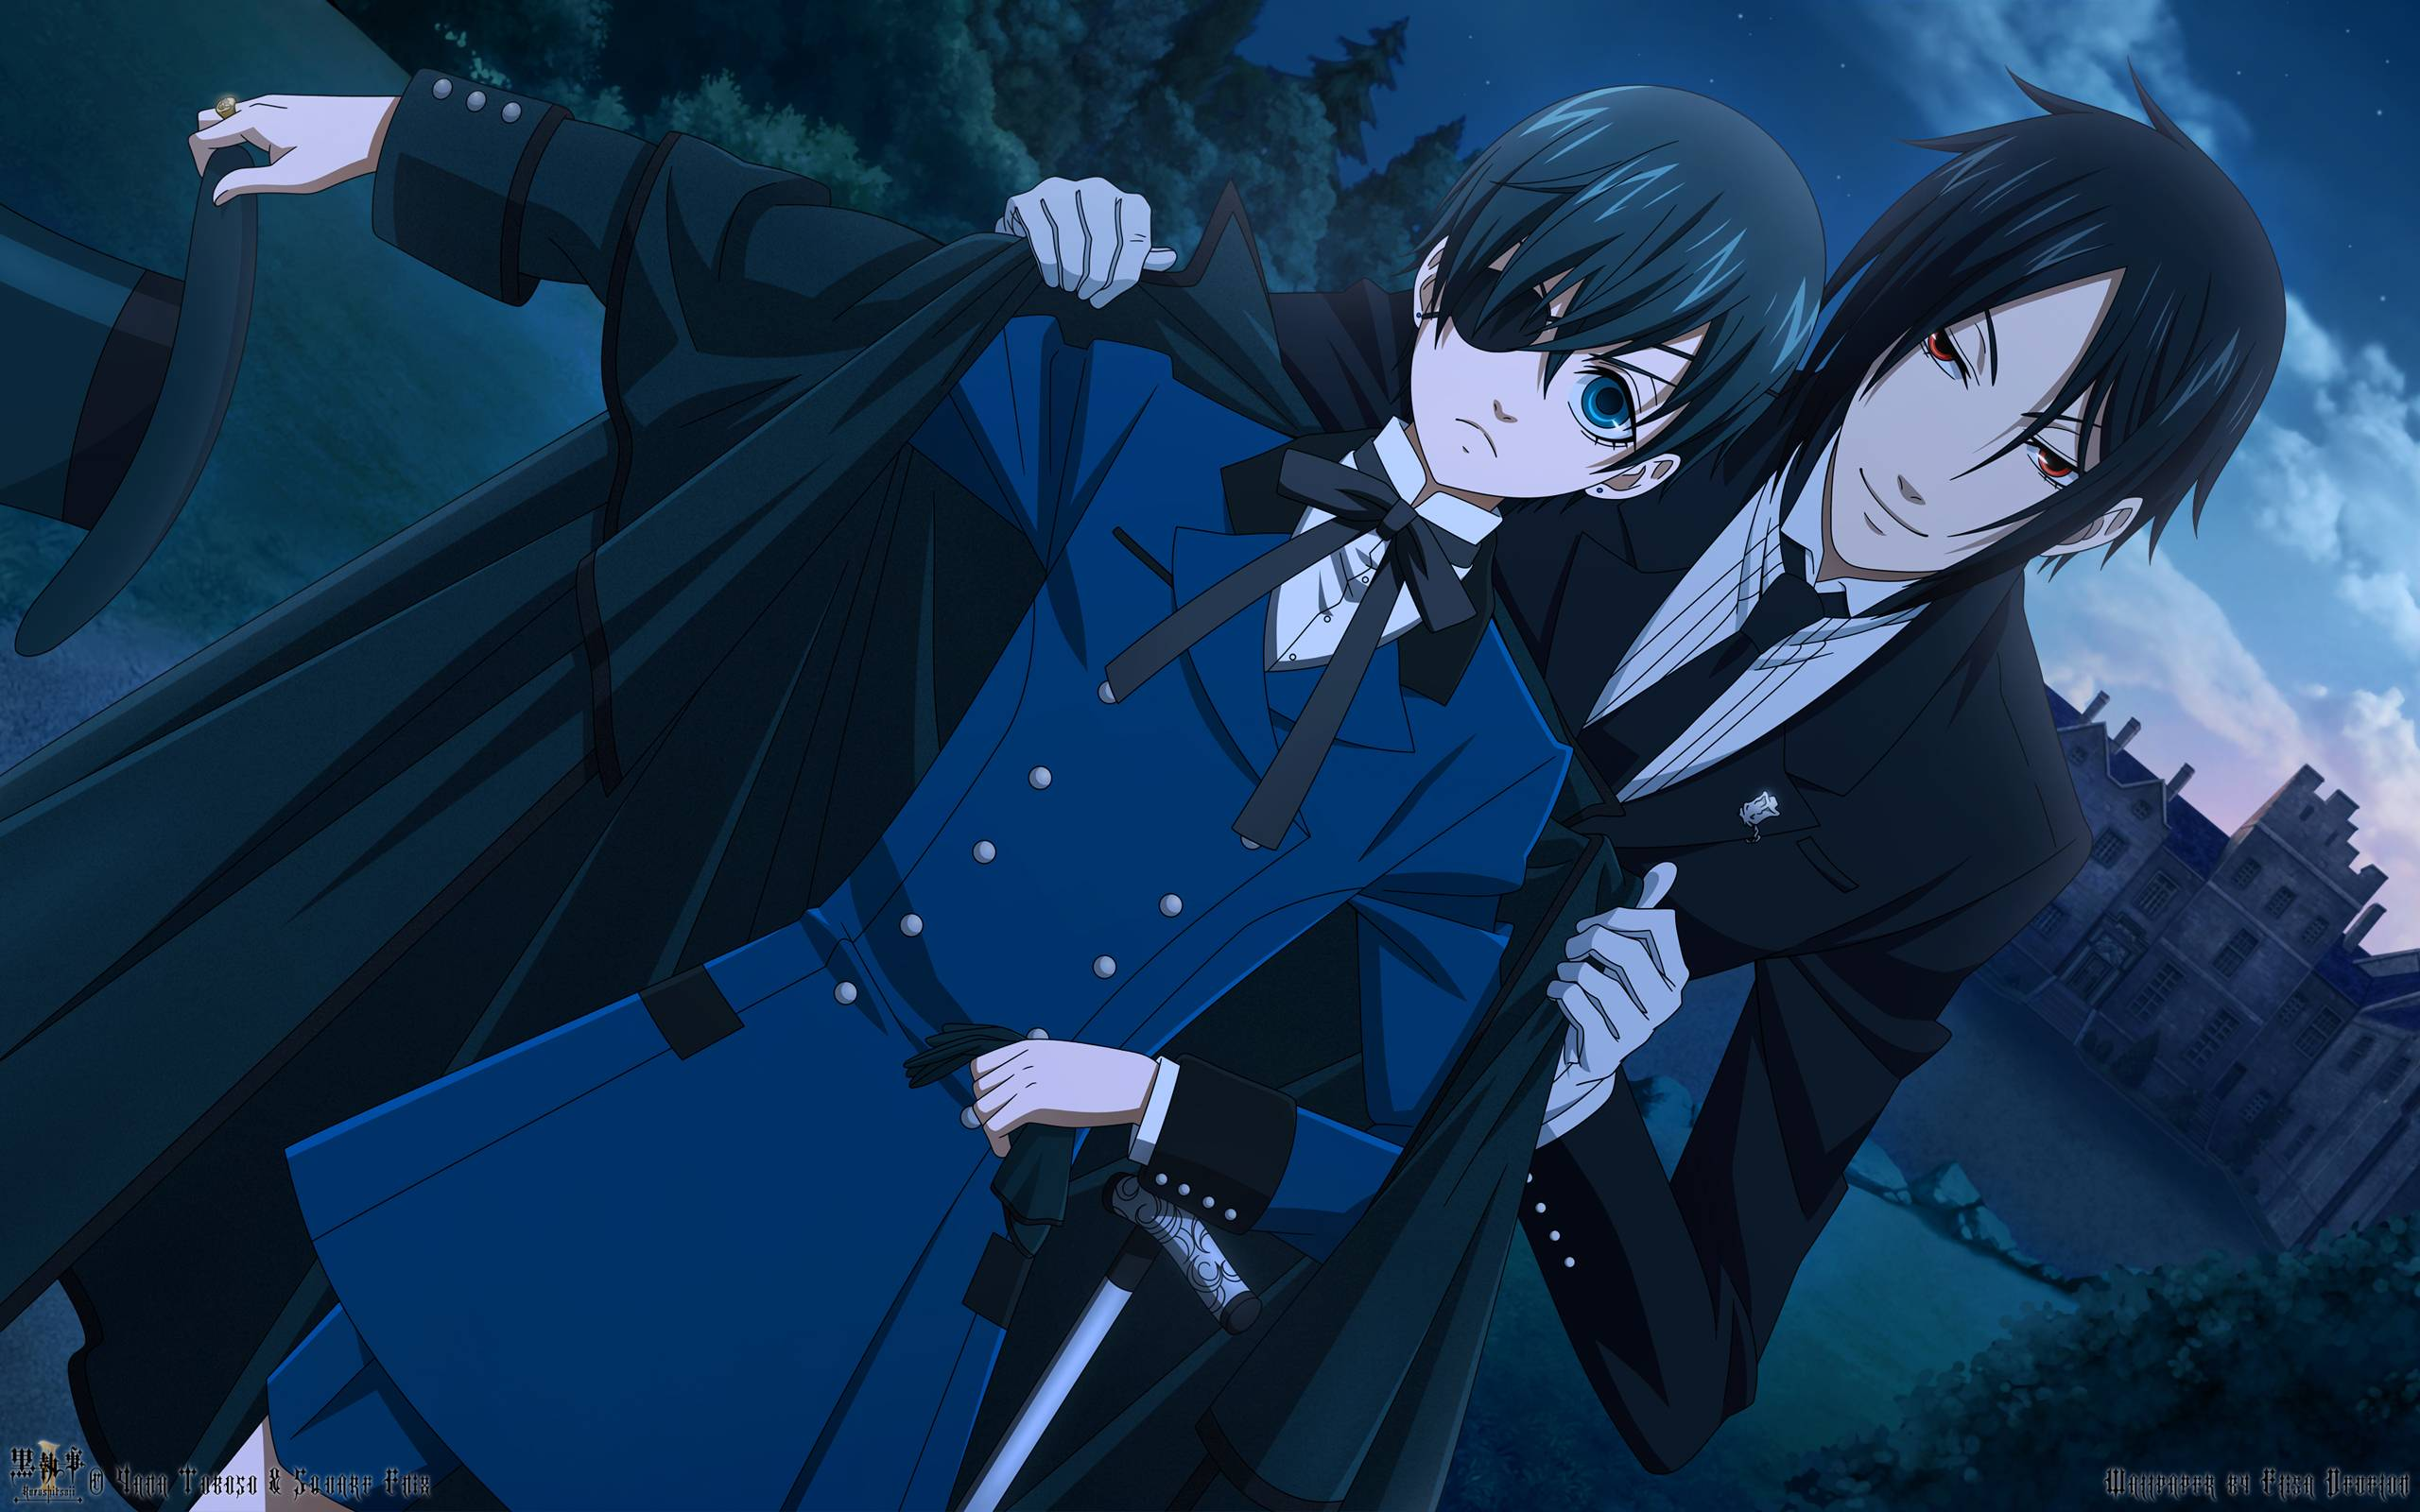 Black Butler Computer Wallpapers, Desktop Backgrounds 2560x1600 Id